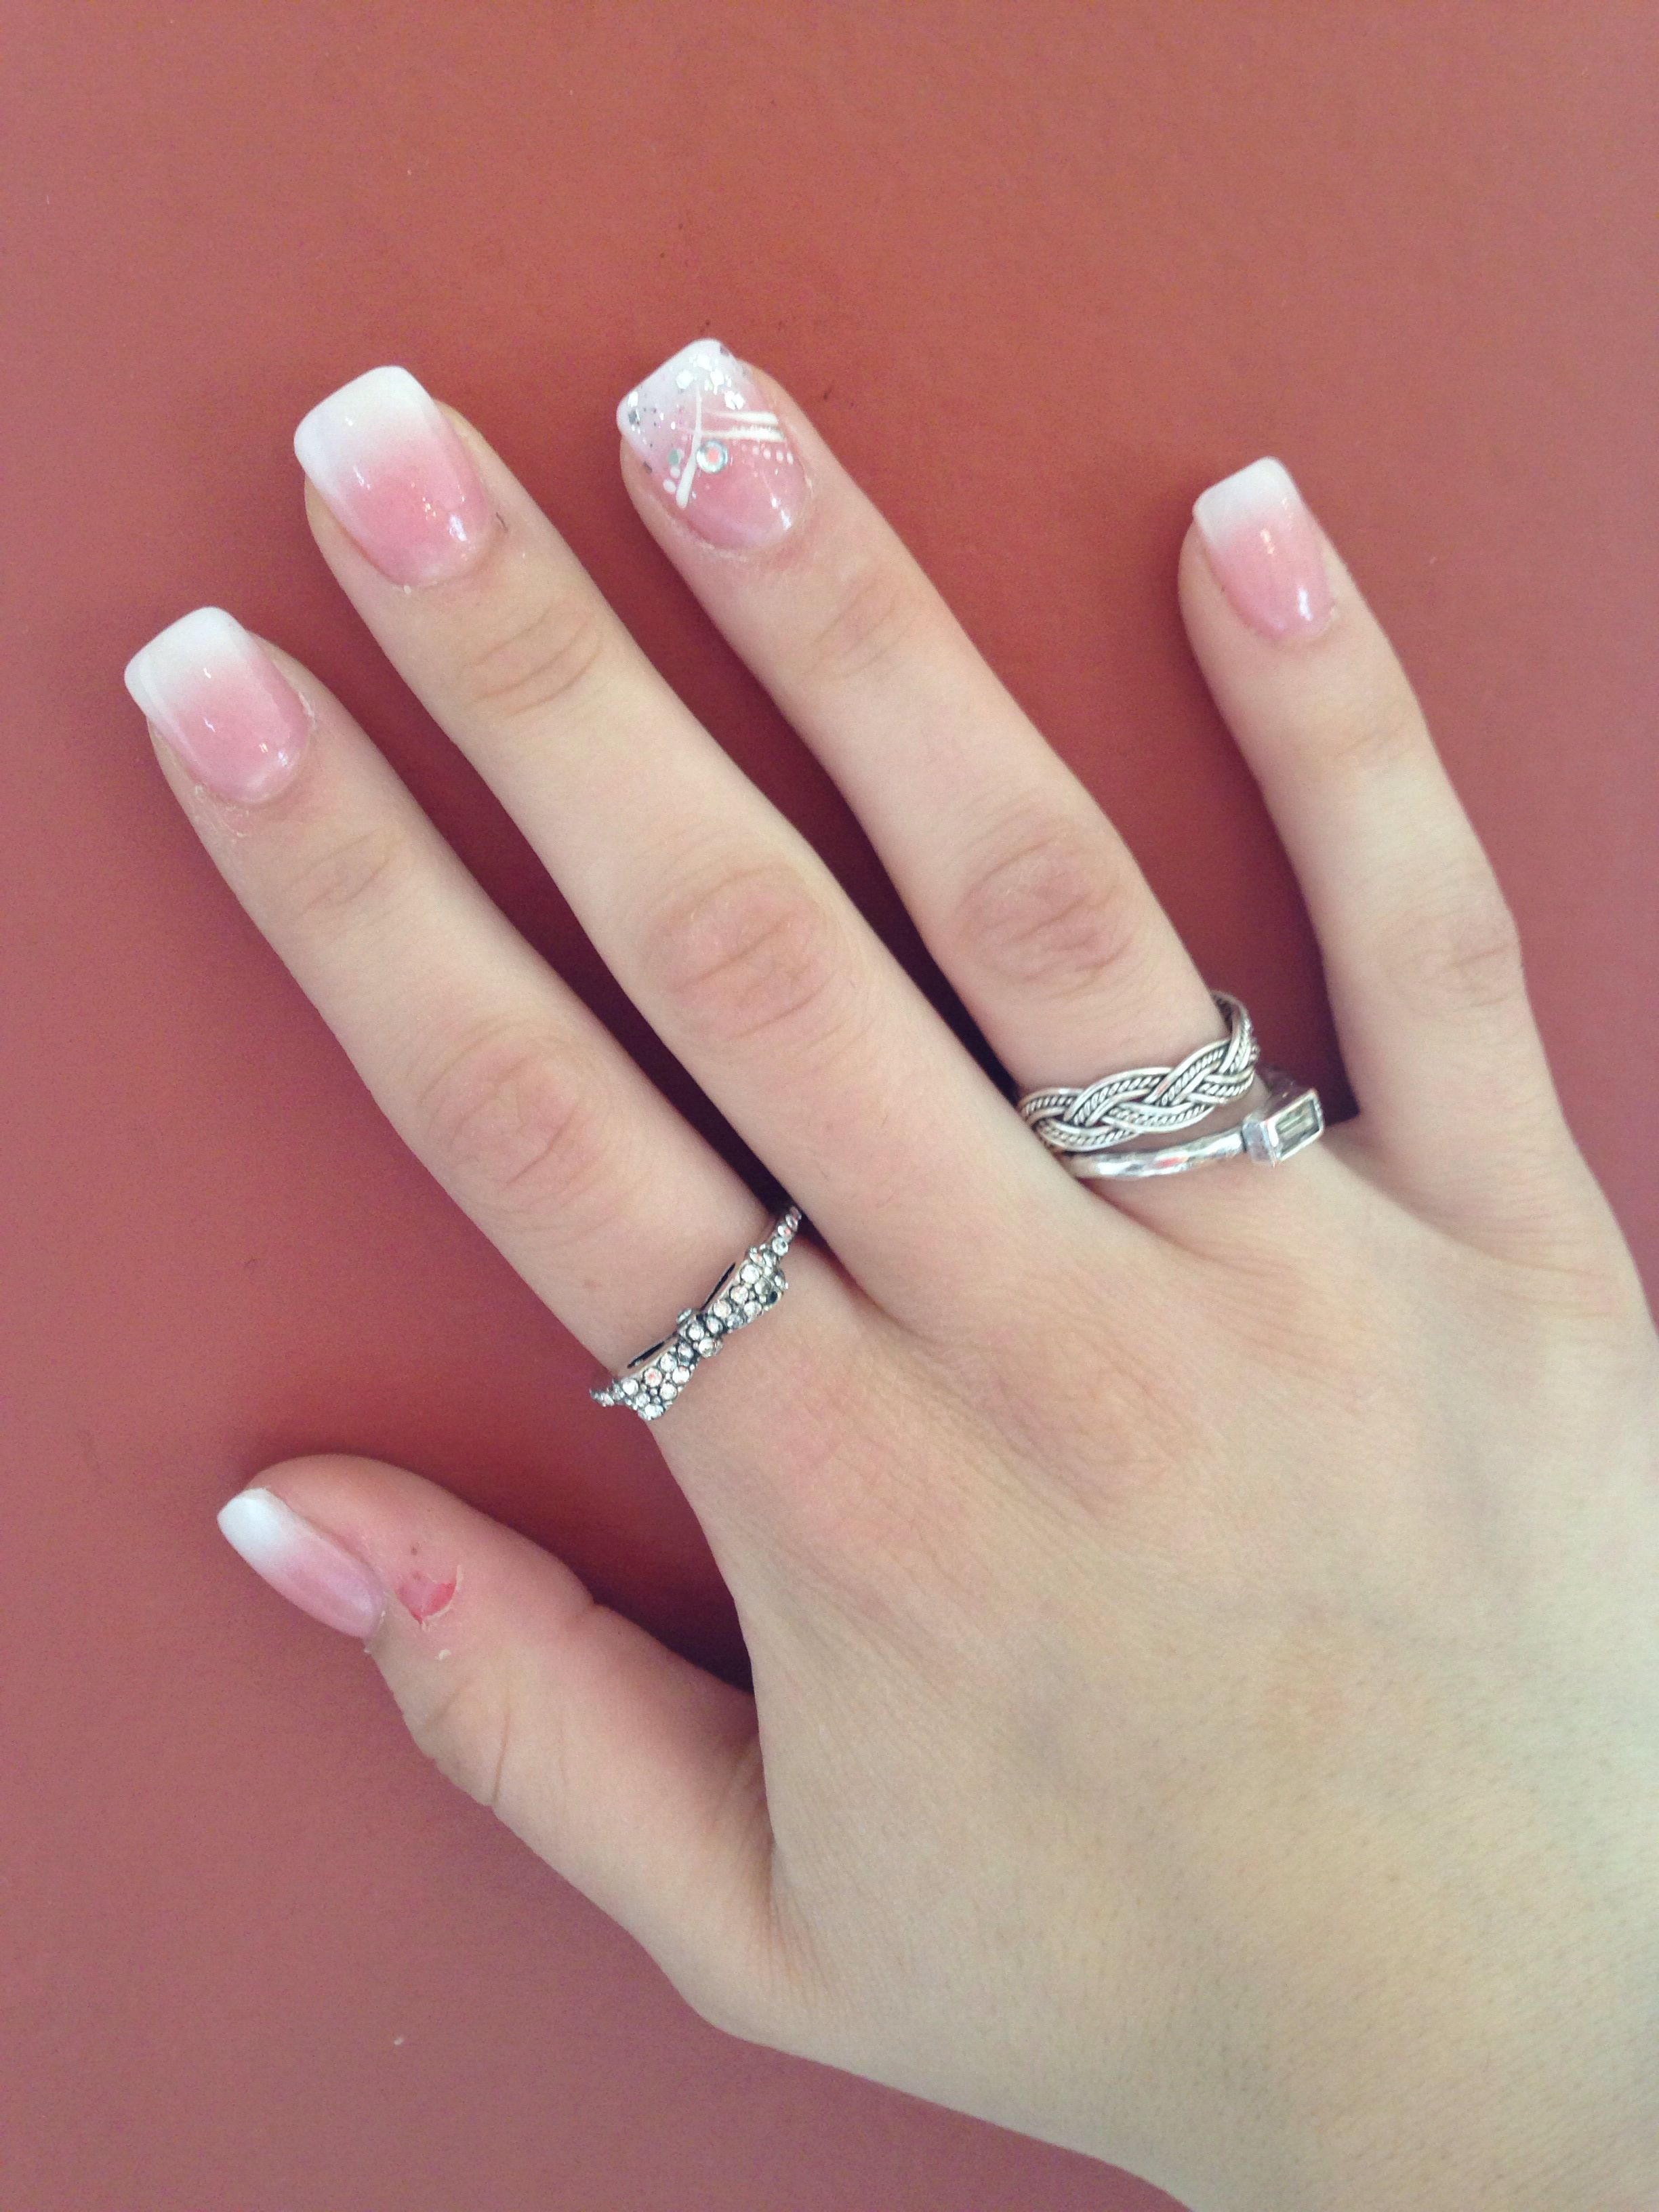 Pin By Madeline Carson On Nails French Manicure Nails Nails Design With Rhinestones Prom Nails